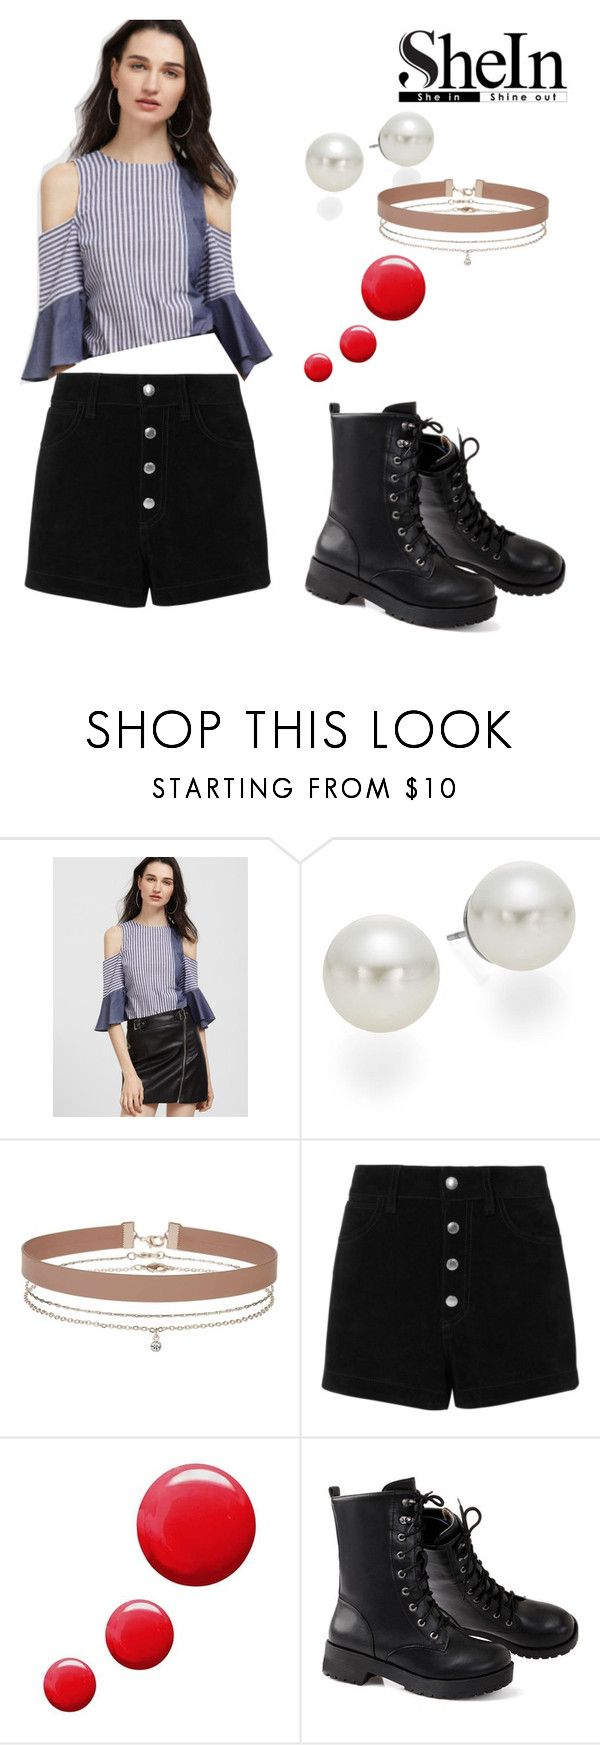 """""""MS💆"""" by lady-shadylady ❤ liked on Polyvore featuring AK Anne Klein, Miss Selfridge, rag & bone/JEAN, Topshop, men's fashion and menswear"""